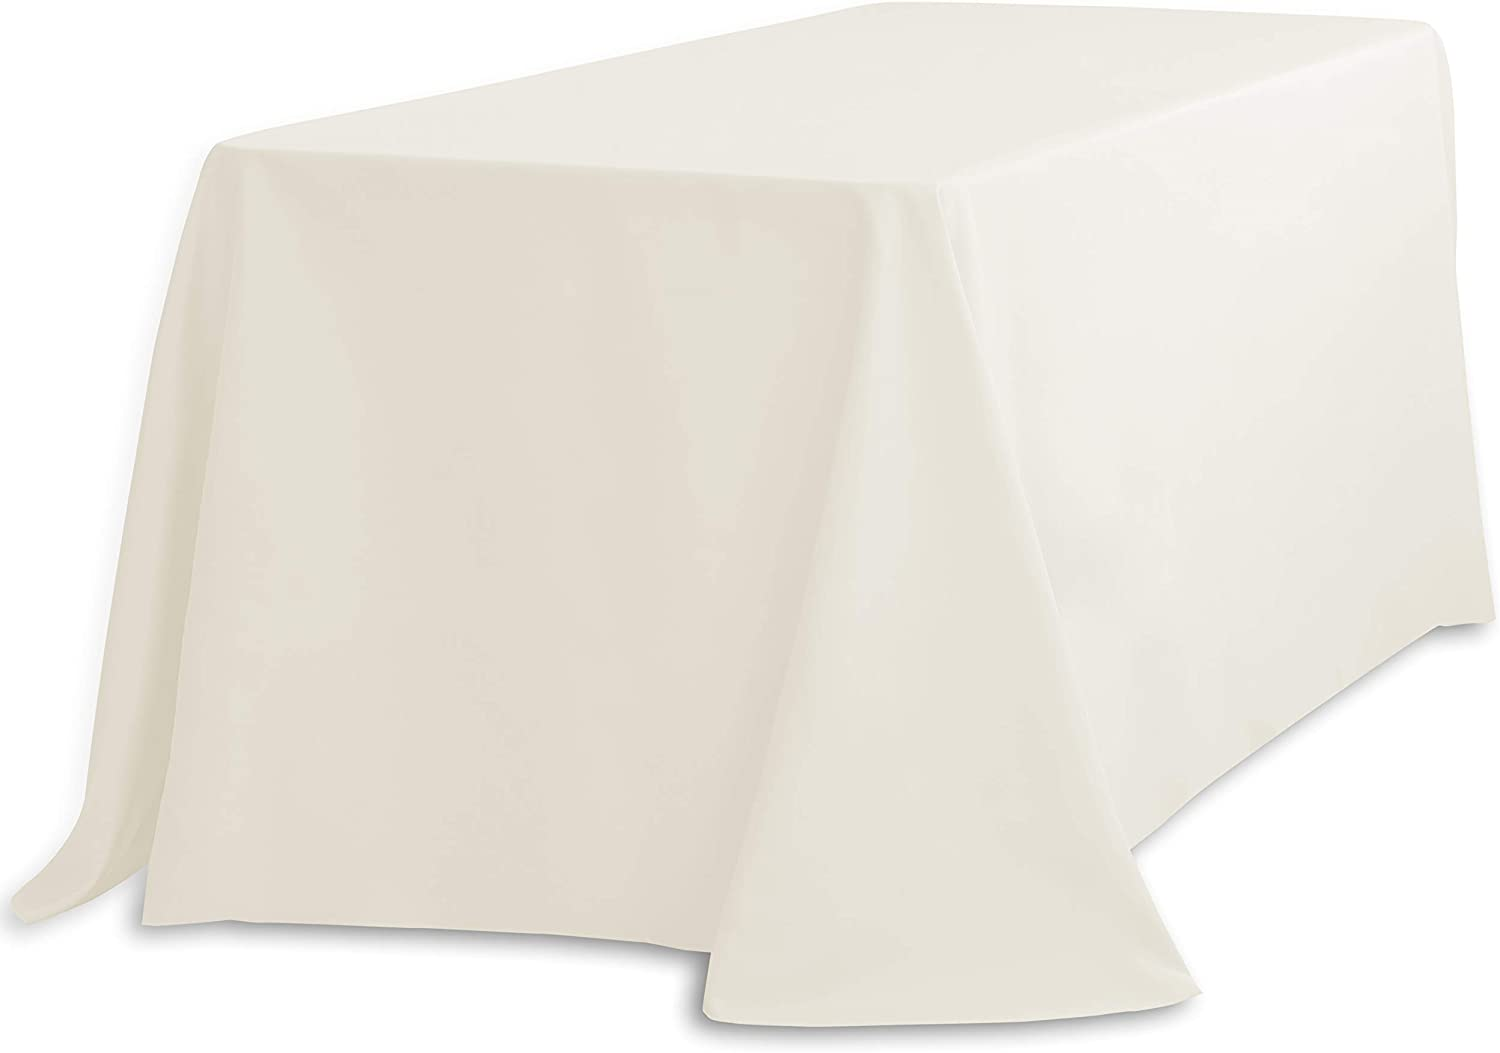 60 x 108 inch Rectangular Ivory Tablecloth Polyester Wedding Tablecloth